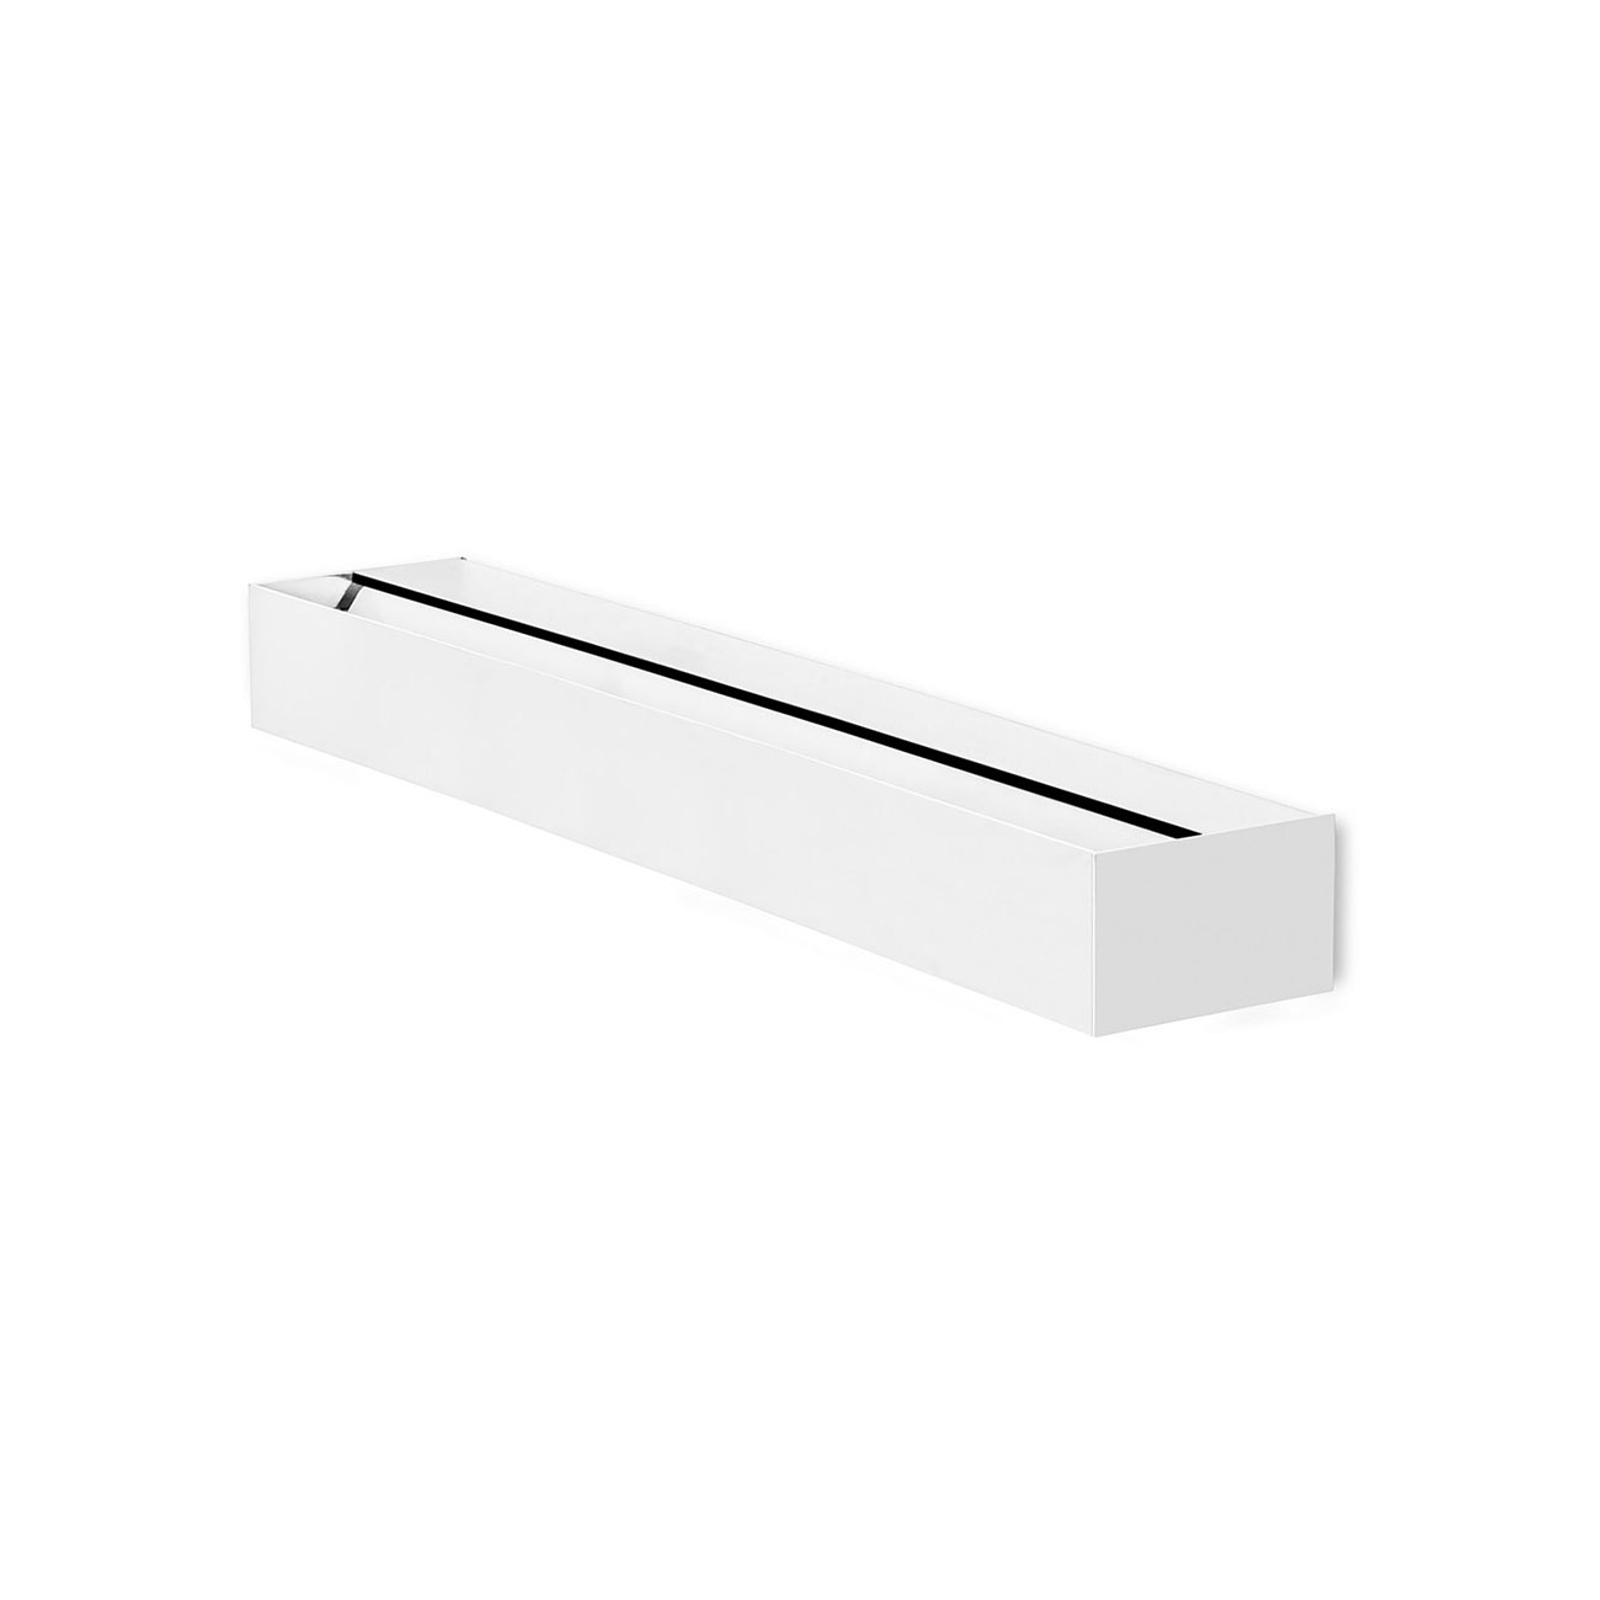 LEDS-C4 Lia applique LED, bianco satinato, 40 cm